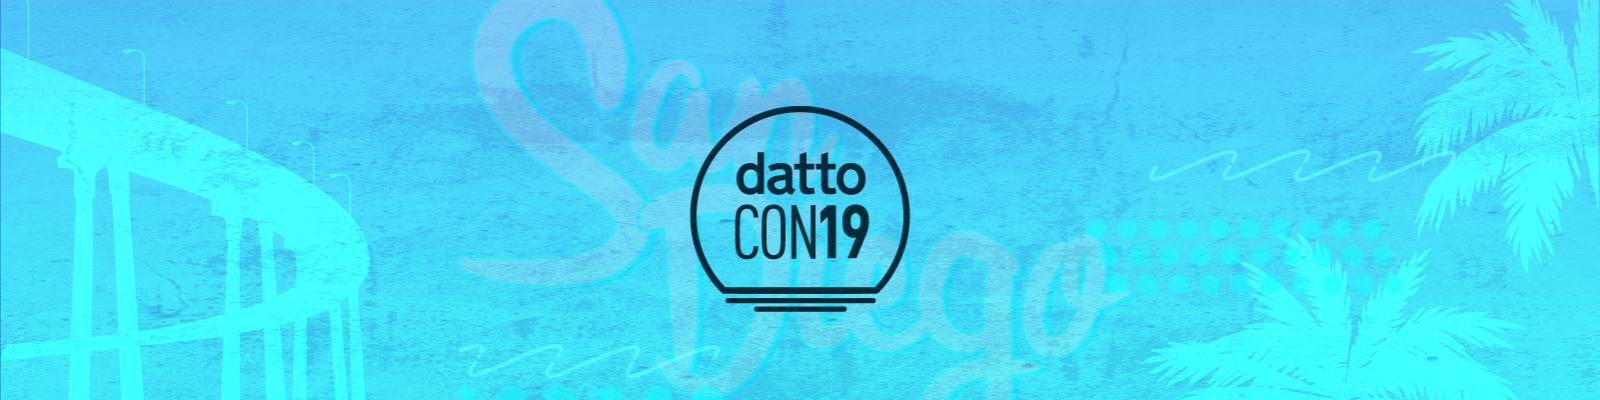 Datto Announces Significant Updates at DattoCon19